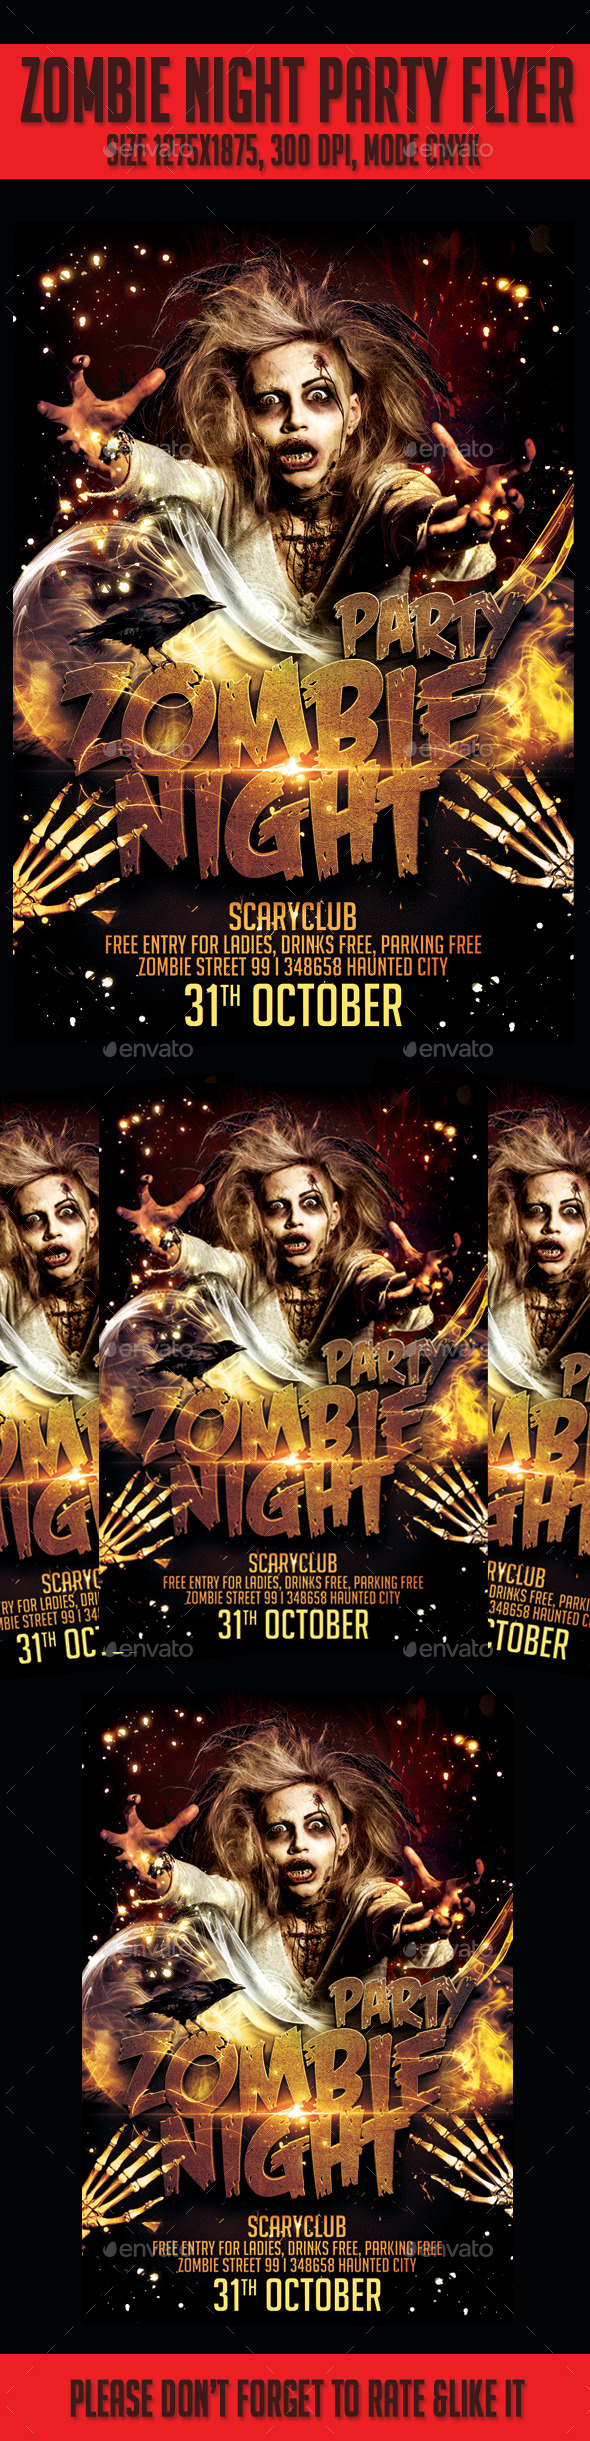 Zombie Night  Party Flyer  - Events Flyers